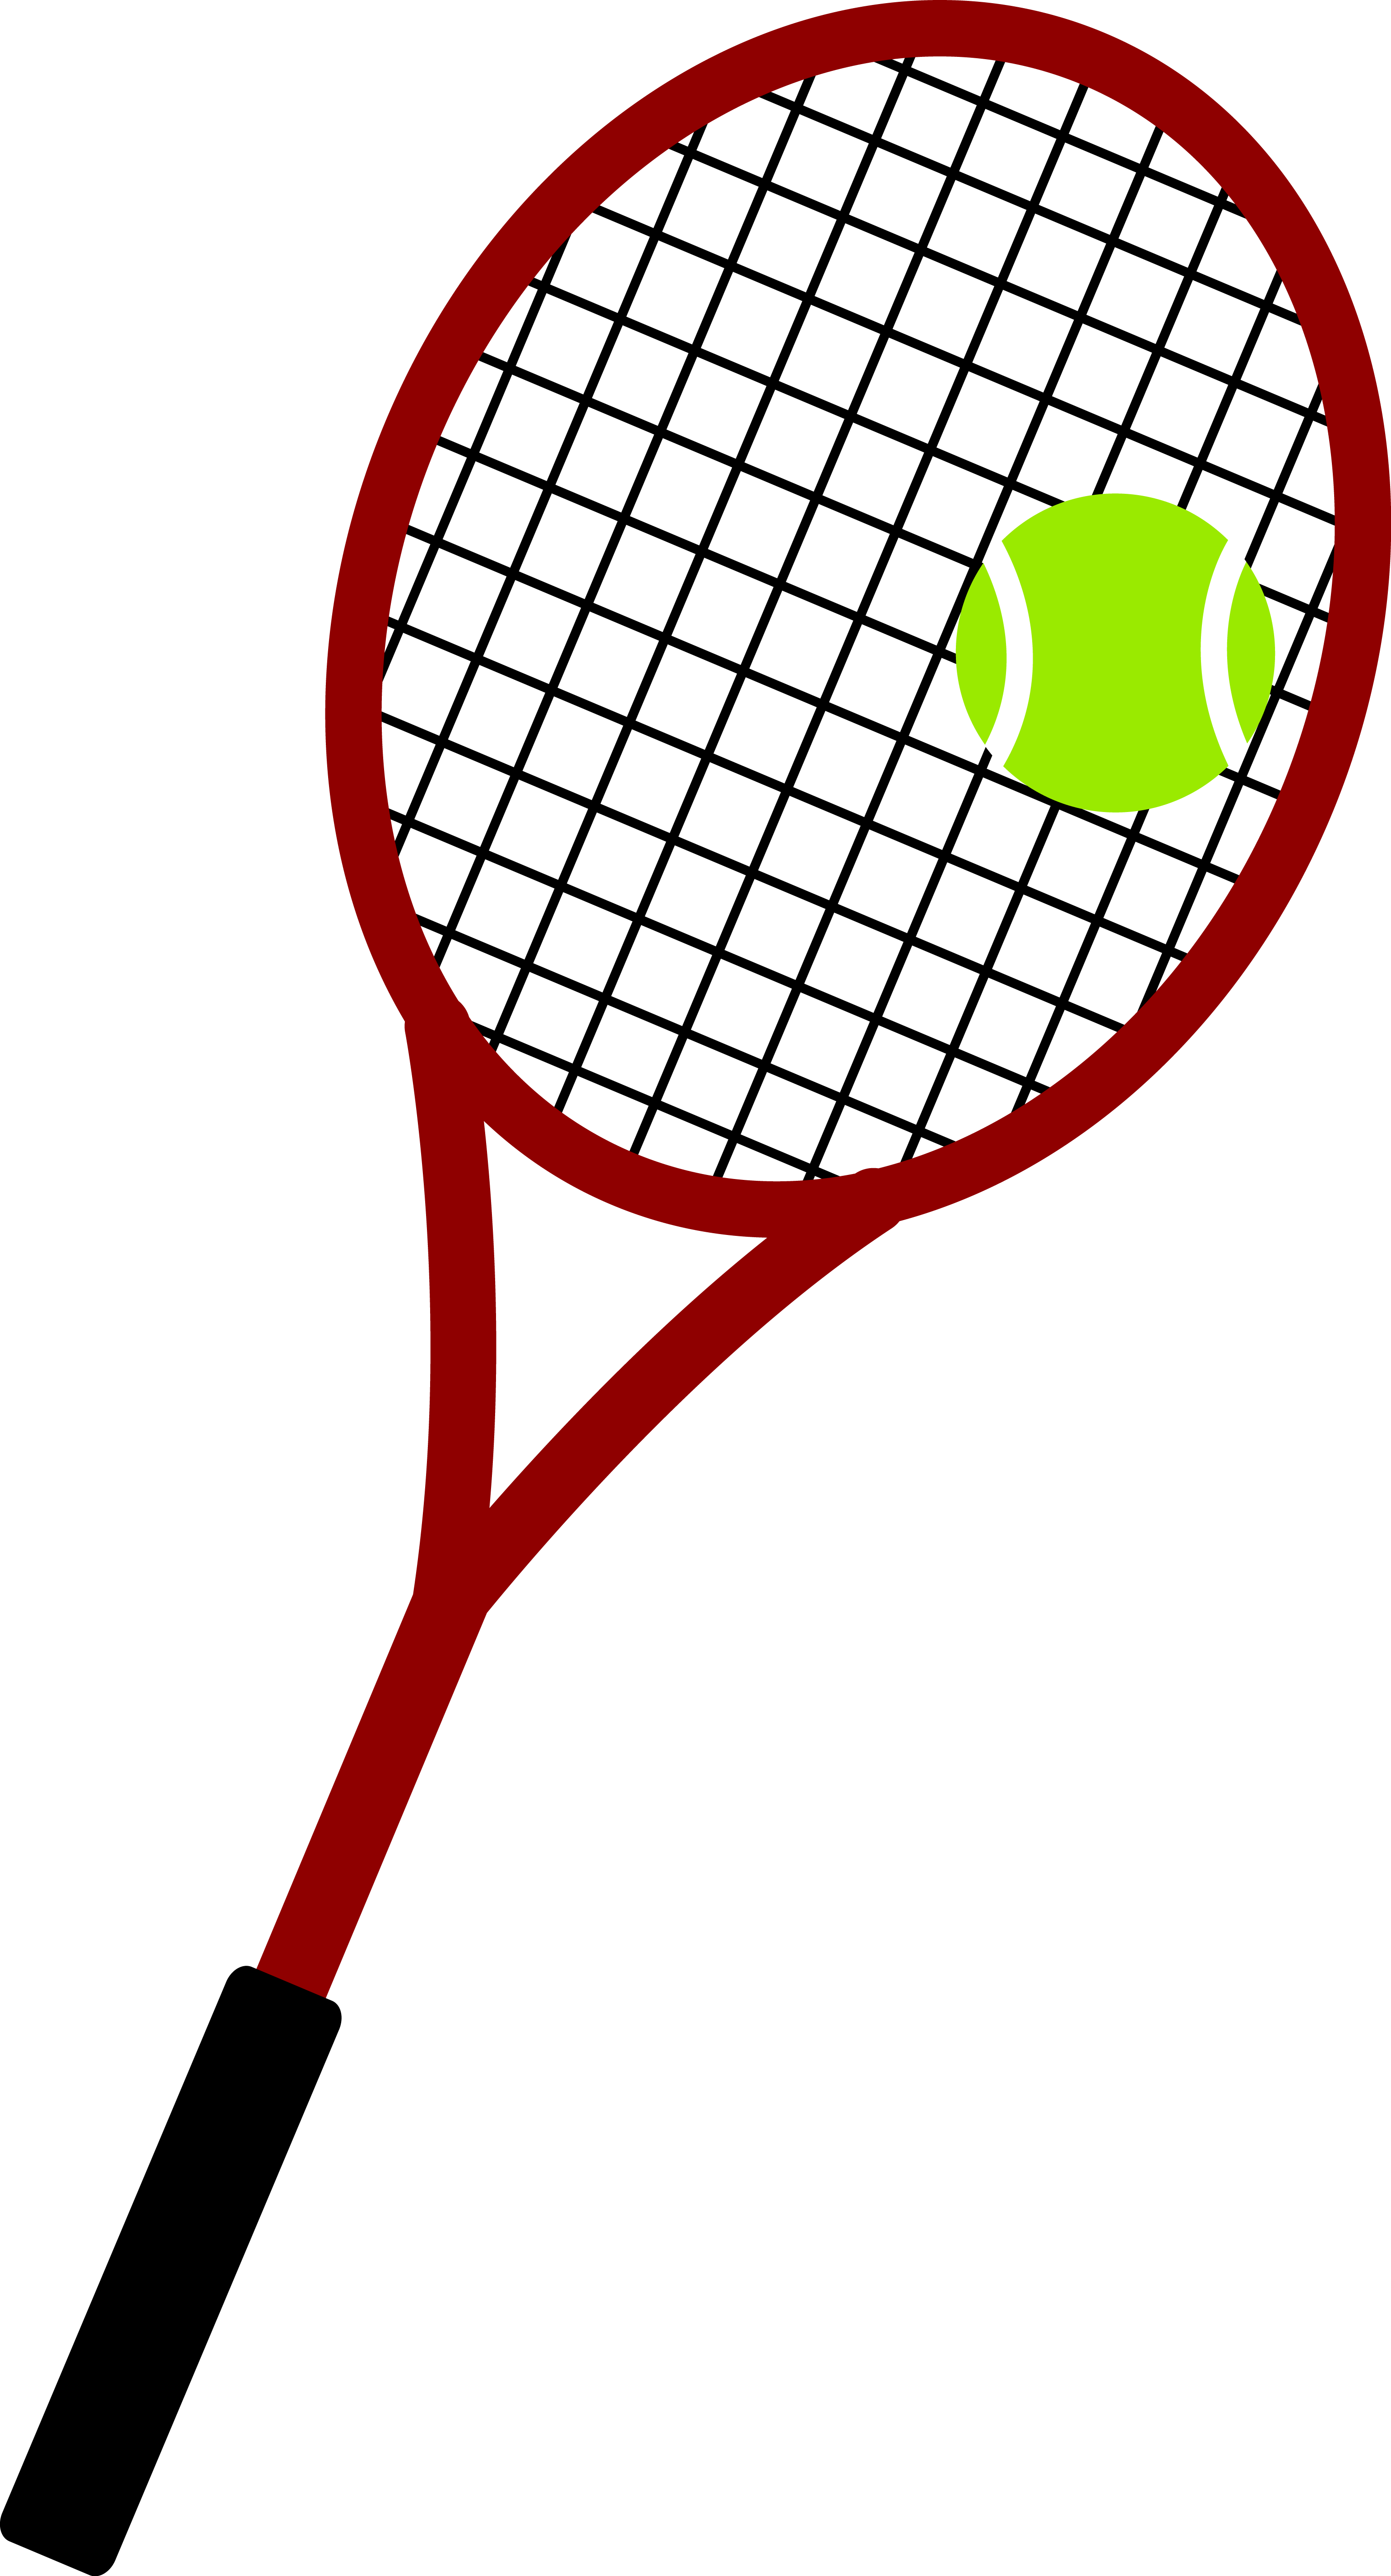 And ball free clip. Racket clipart lawn tennis clip free